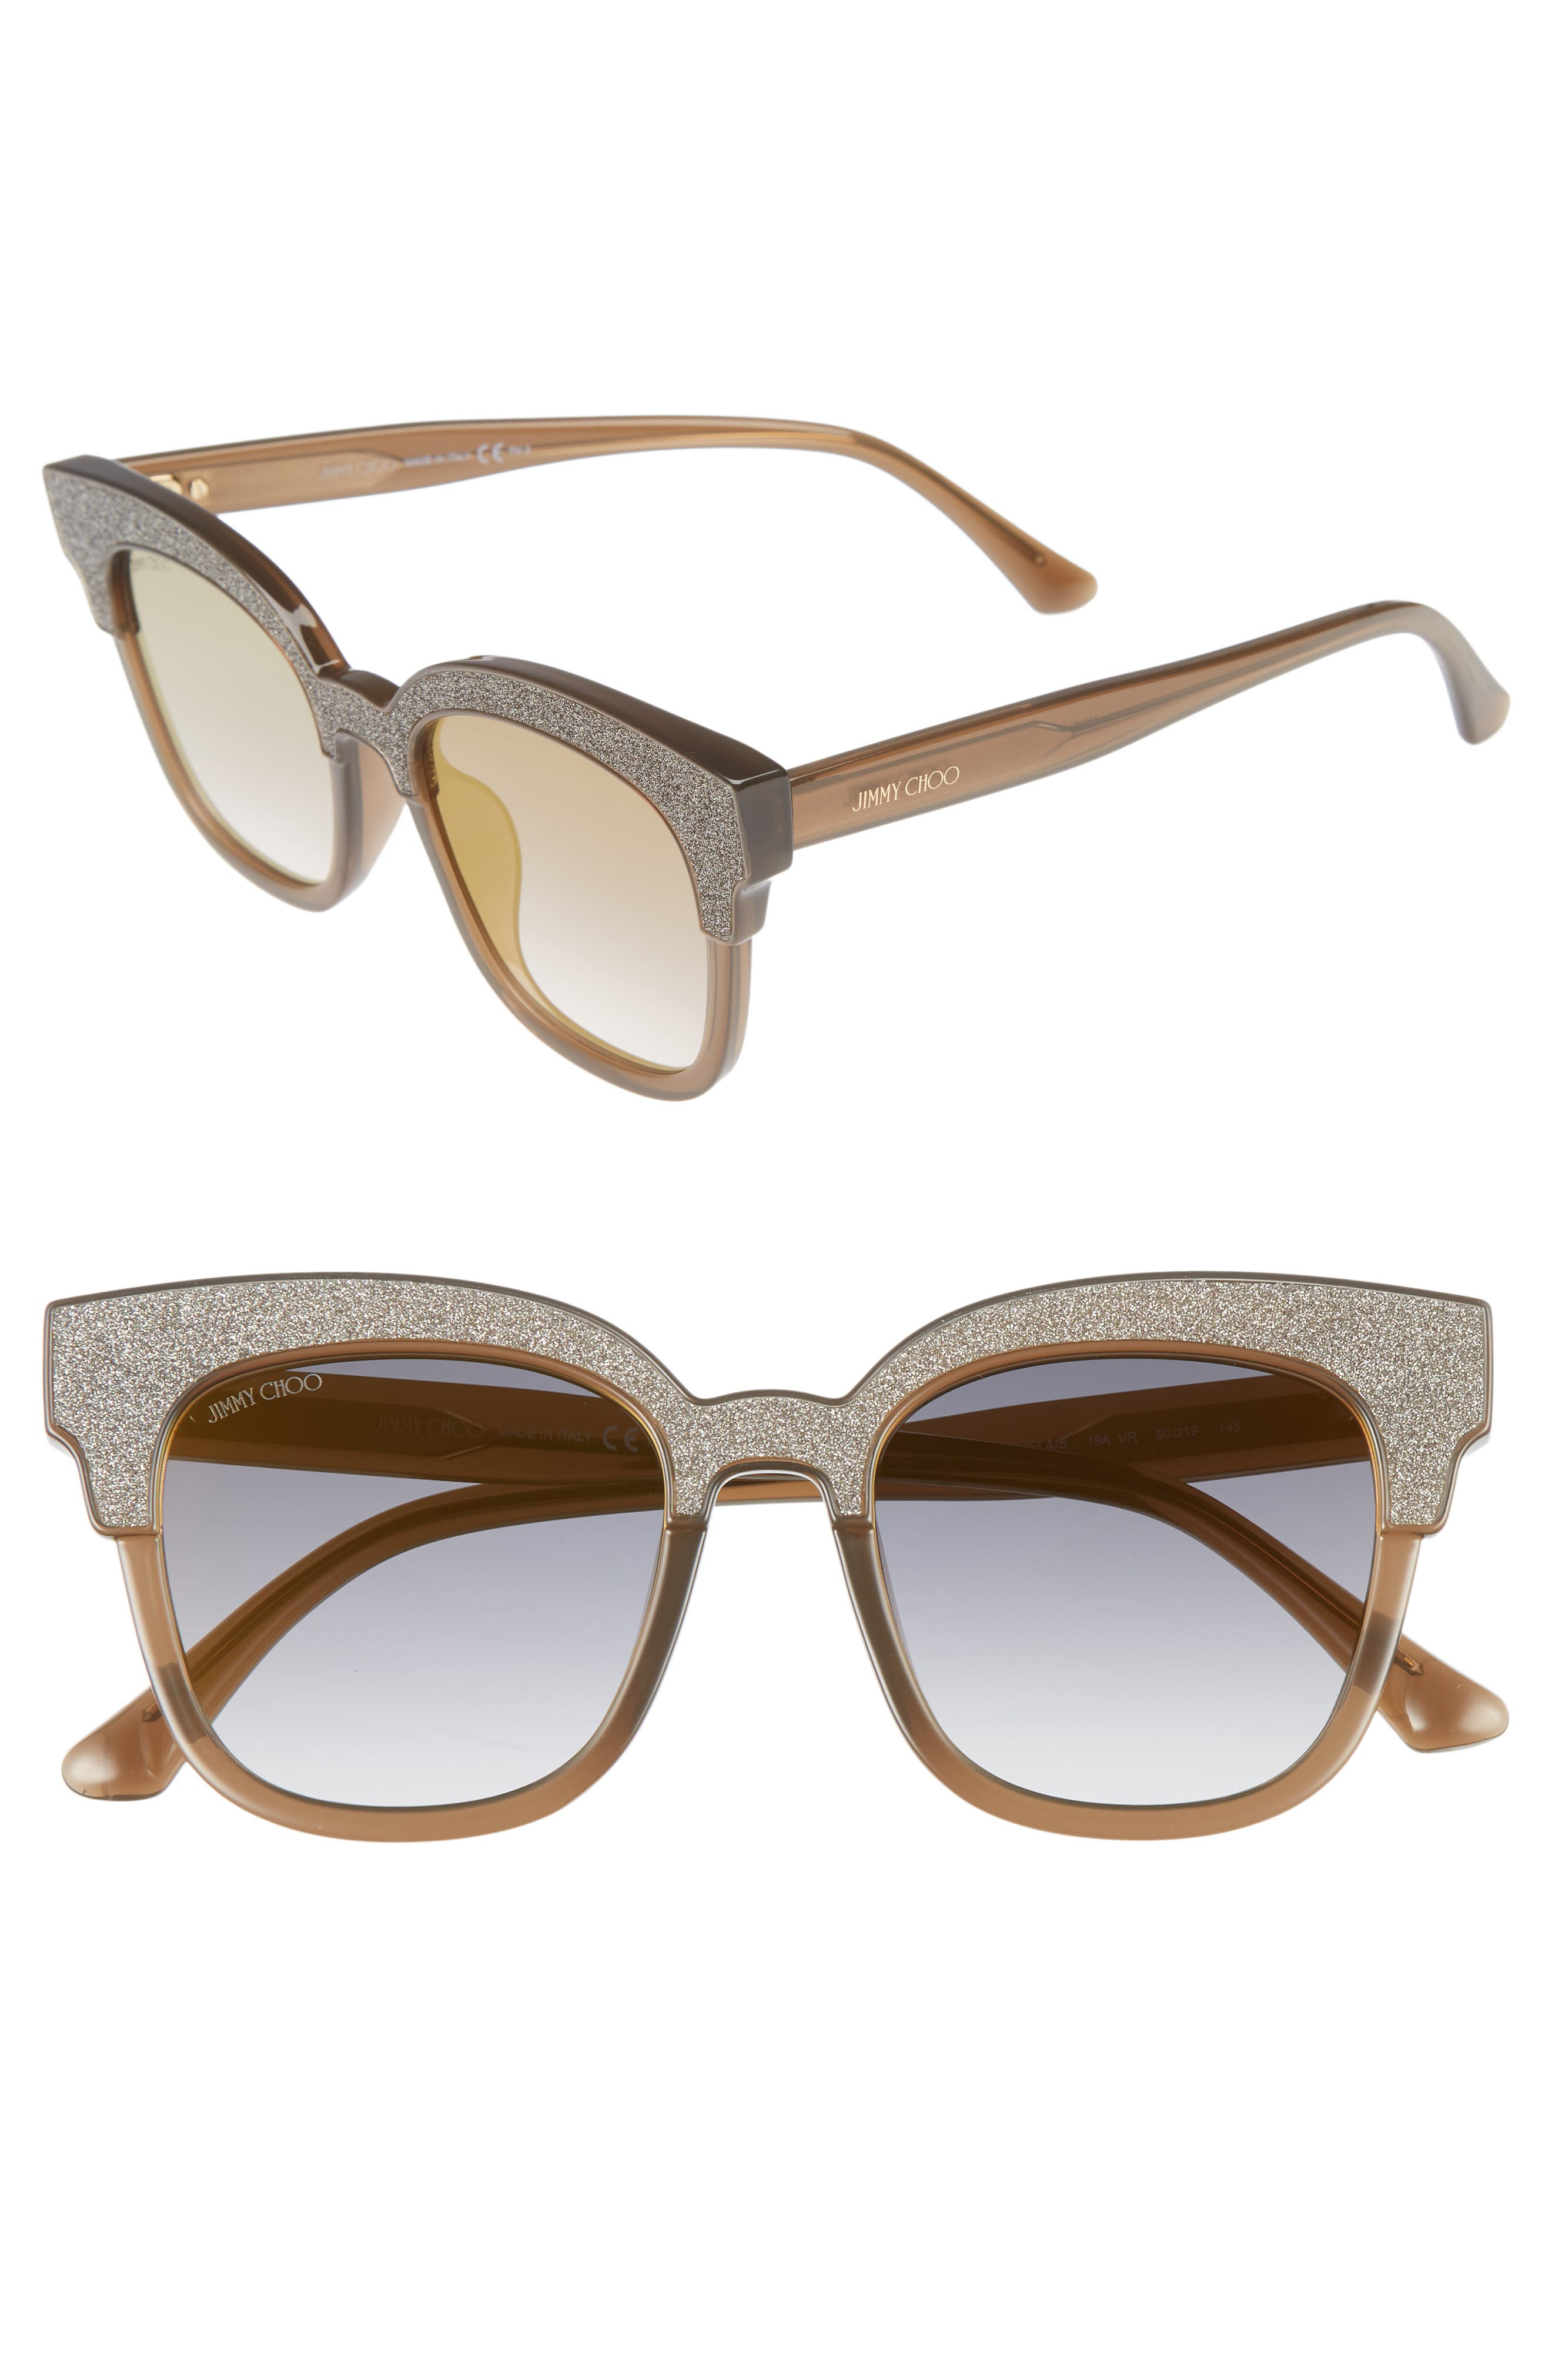 Jimmy Choo Mayelas 50mm Cat Eye Sunglasses